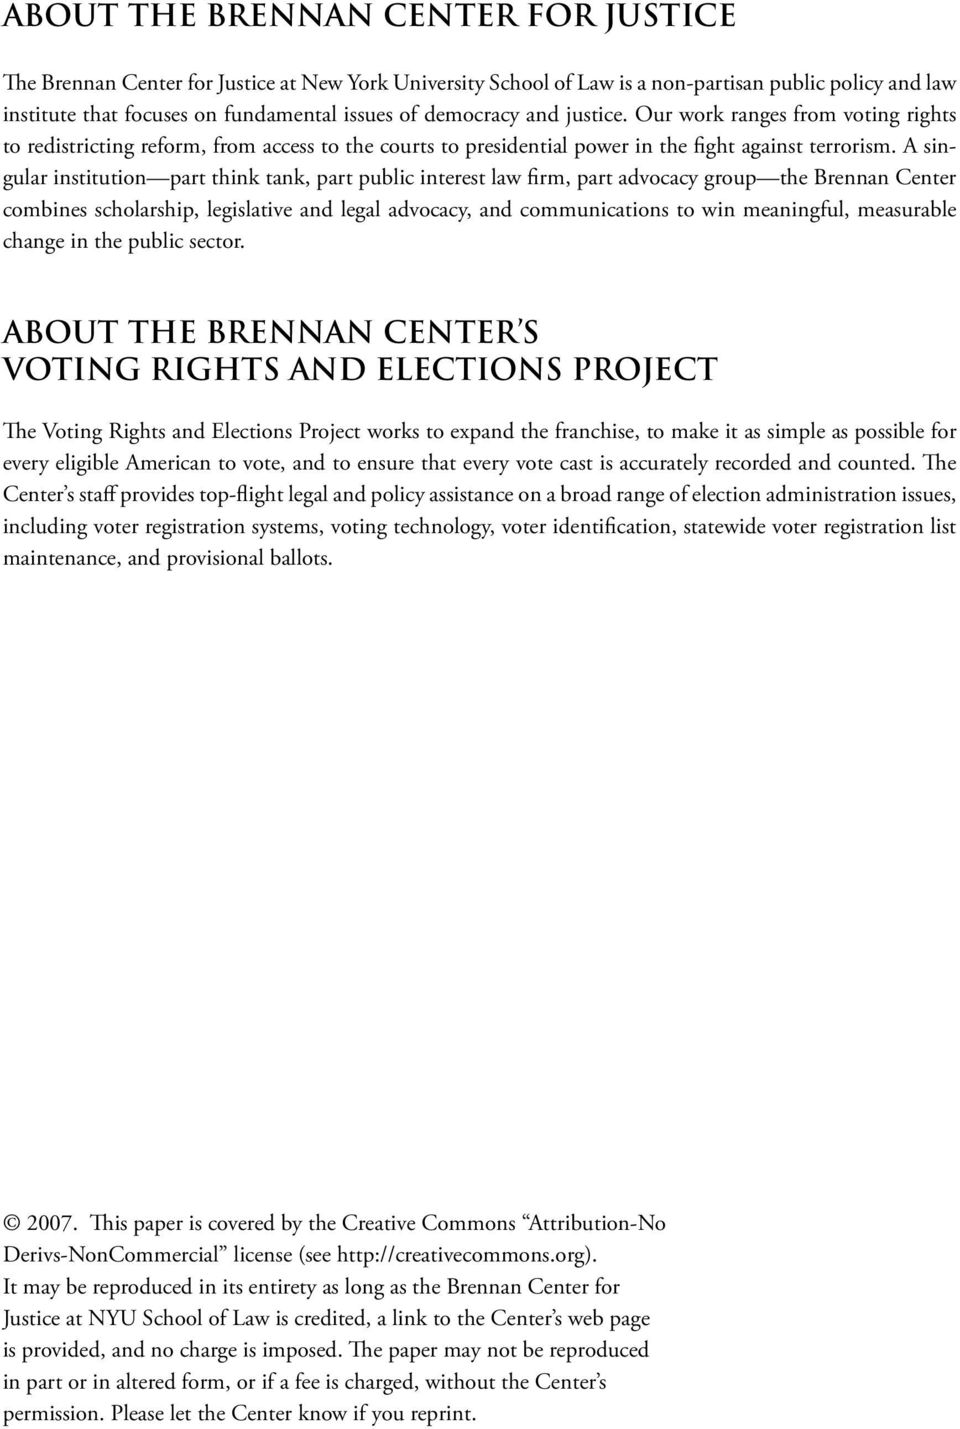 A singular institution part think tank, part public interest law firm, part advocacy group the Brennan Center combines scholarship, legislative and legal advocacy, and communications to win